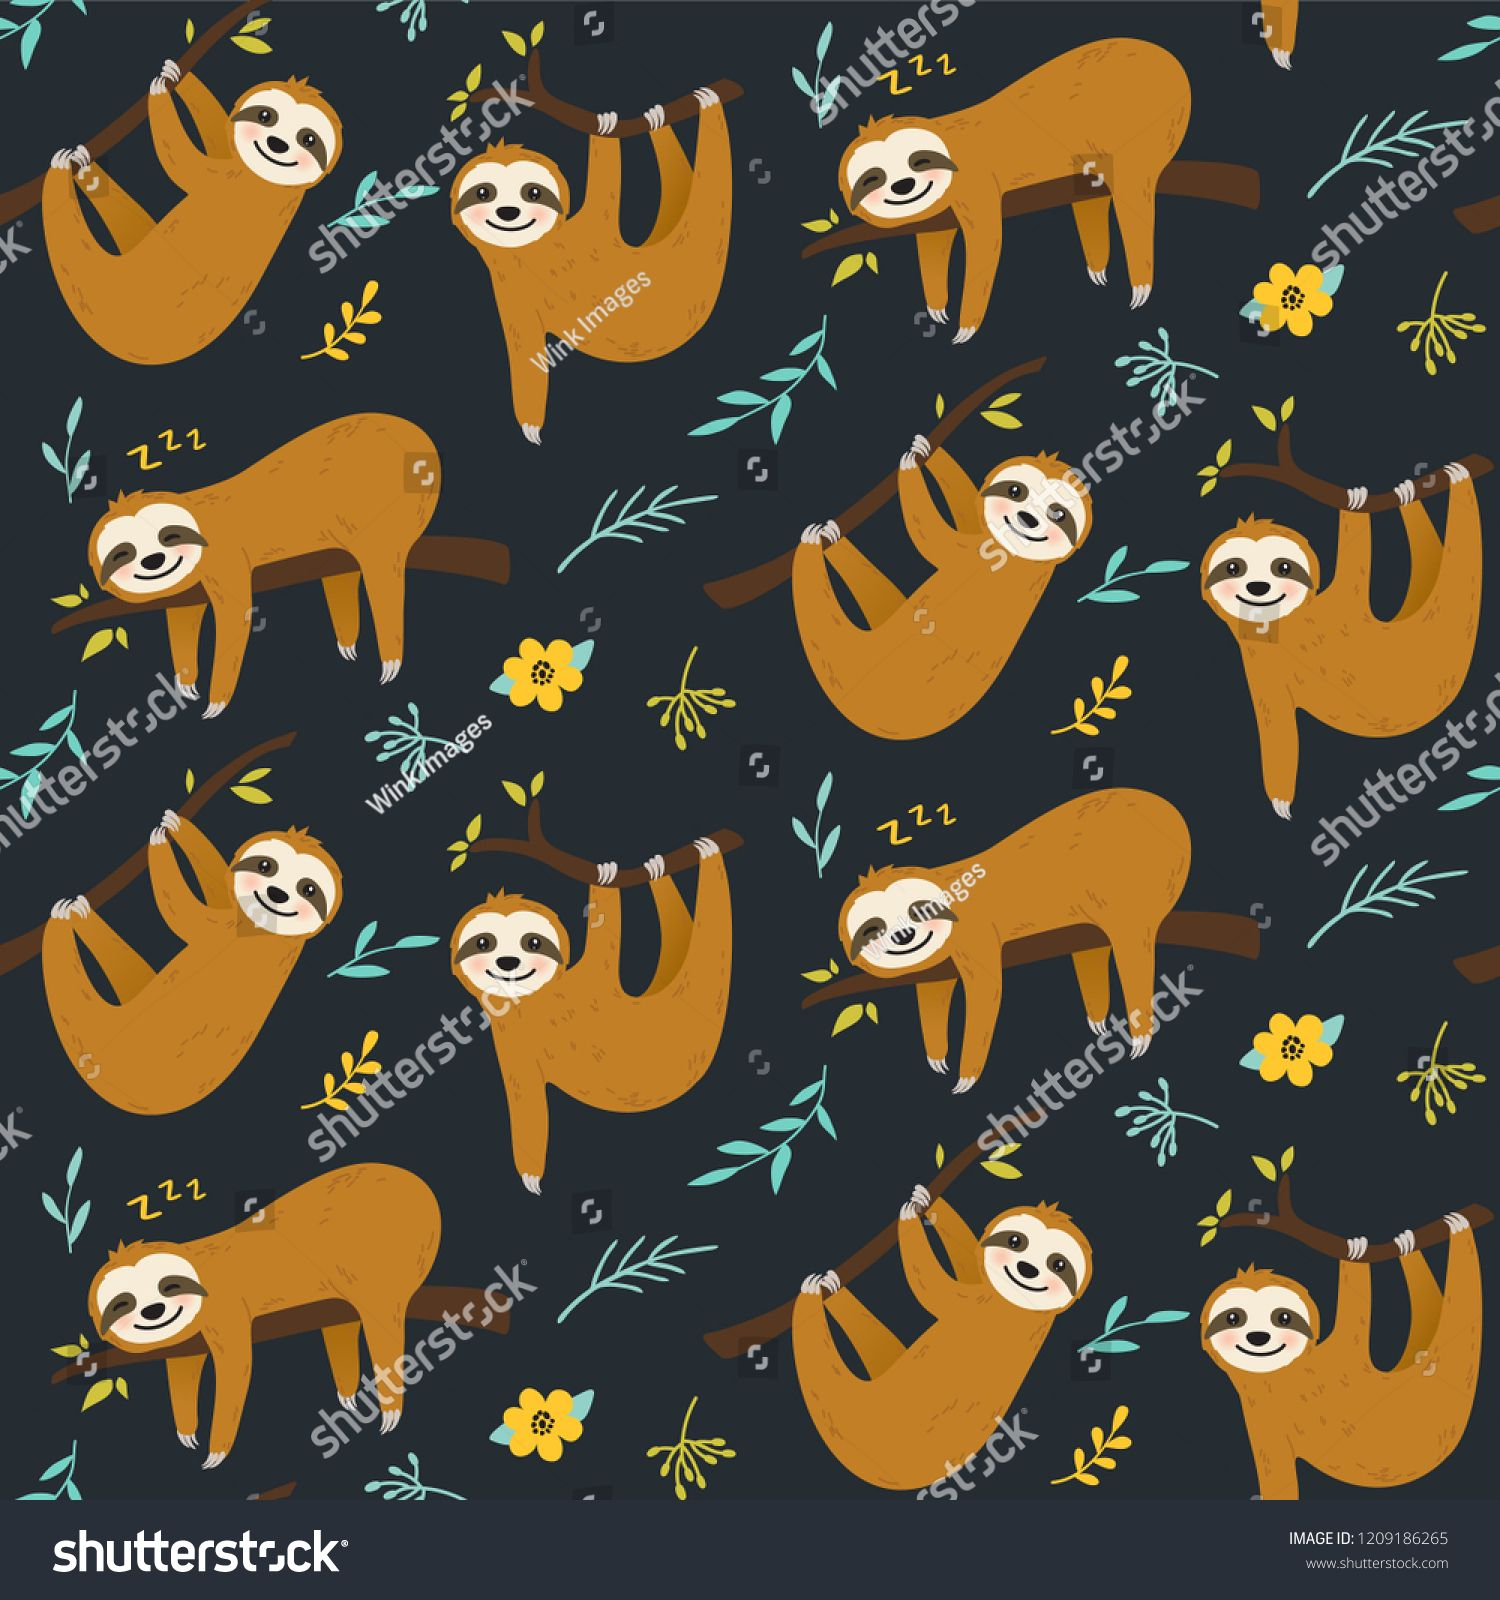 Cute cartoon sloth seamless pattern vector graphic design